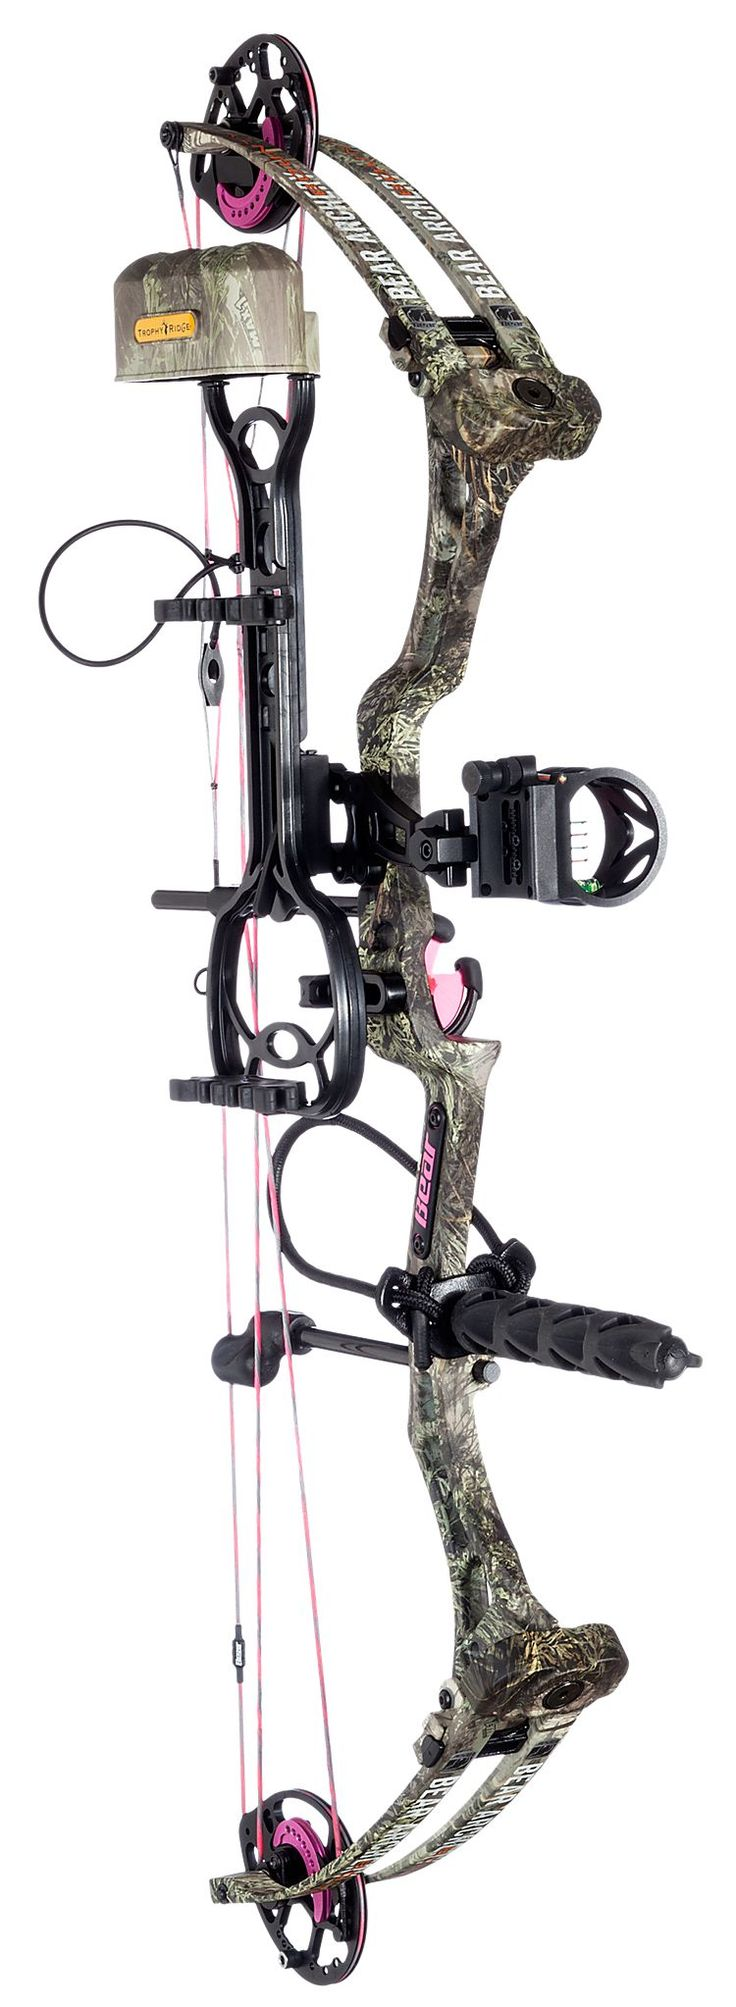 Bear Archery Bounty RTH Compound Bow Package for Ladies | Bass Pro Shops: The Best Hunting, Fishing, Camping & Outdoor Gear WISH LIST